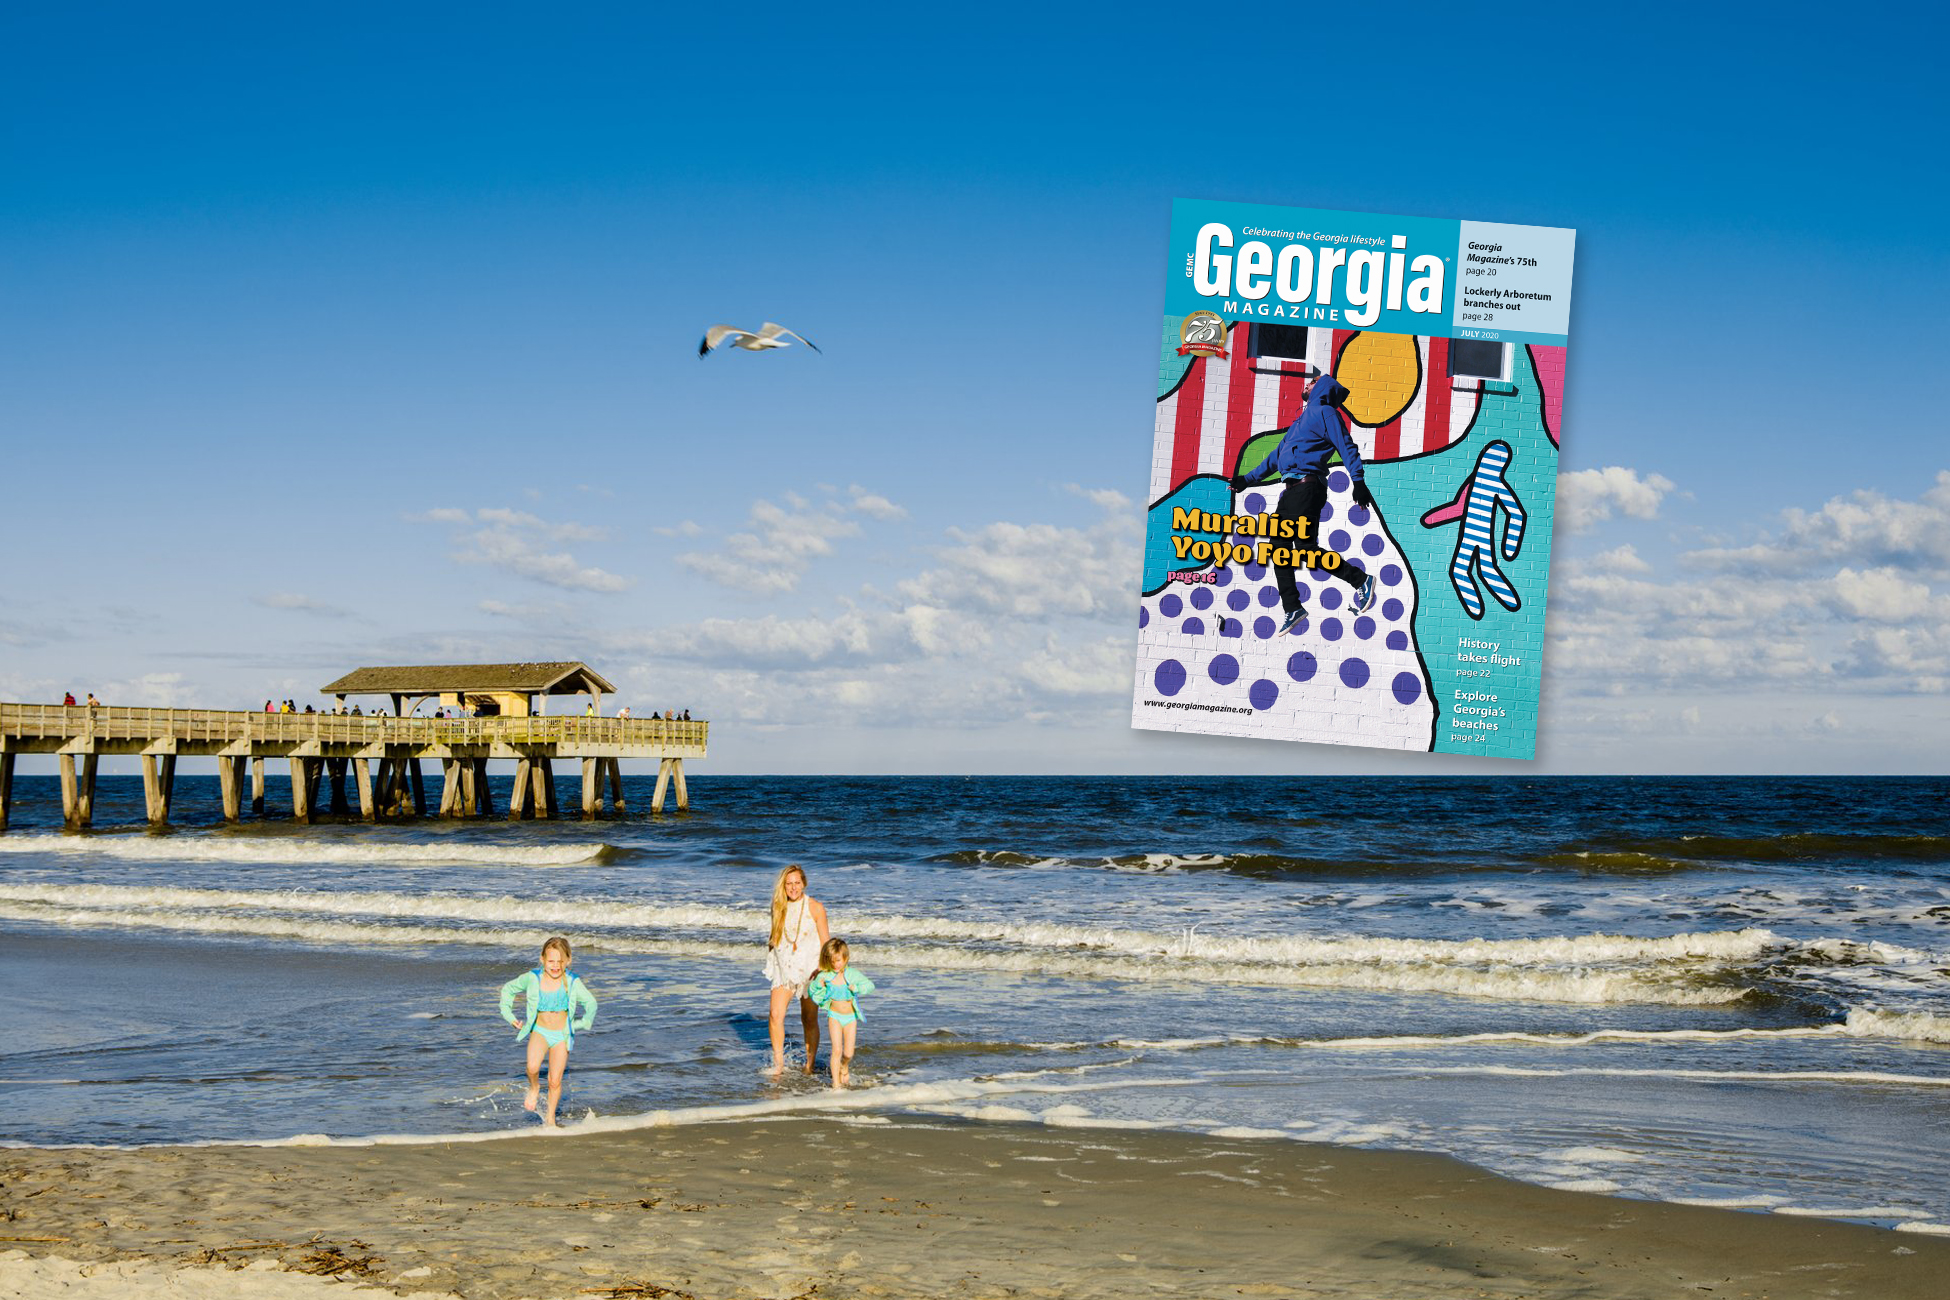 Check out July's Georgia Magazine